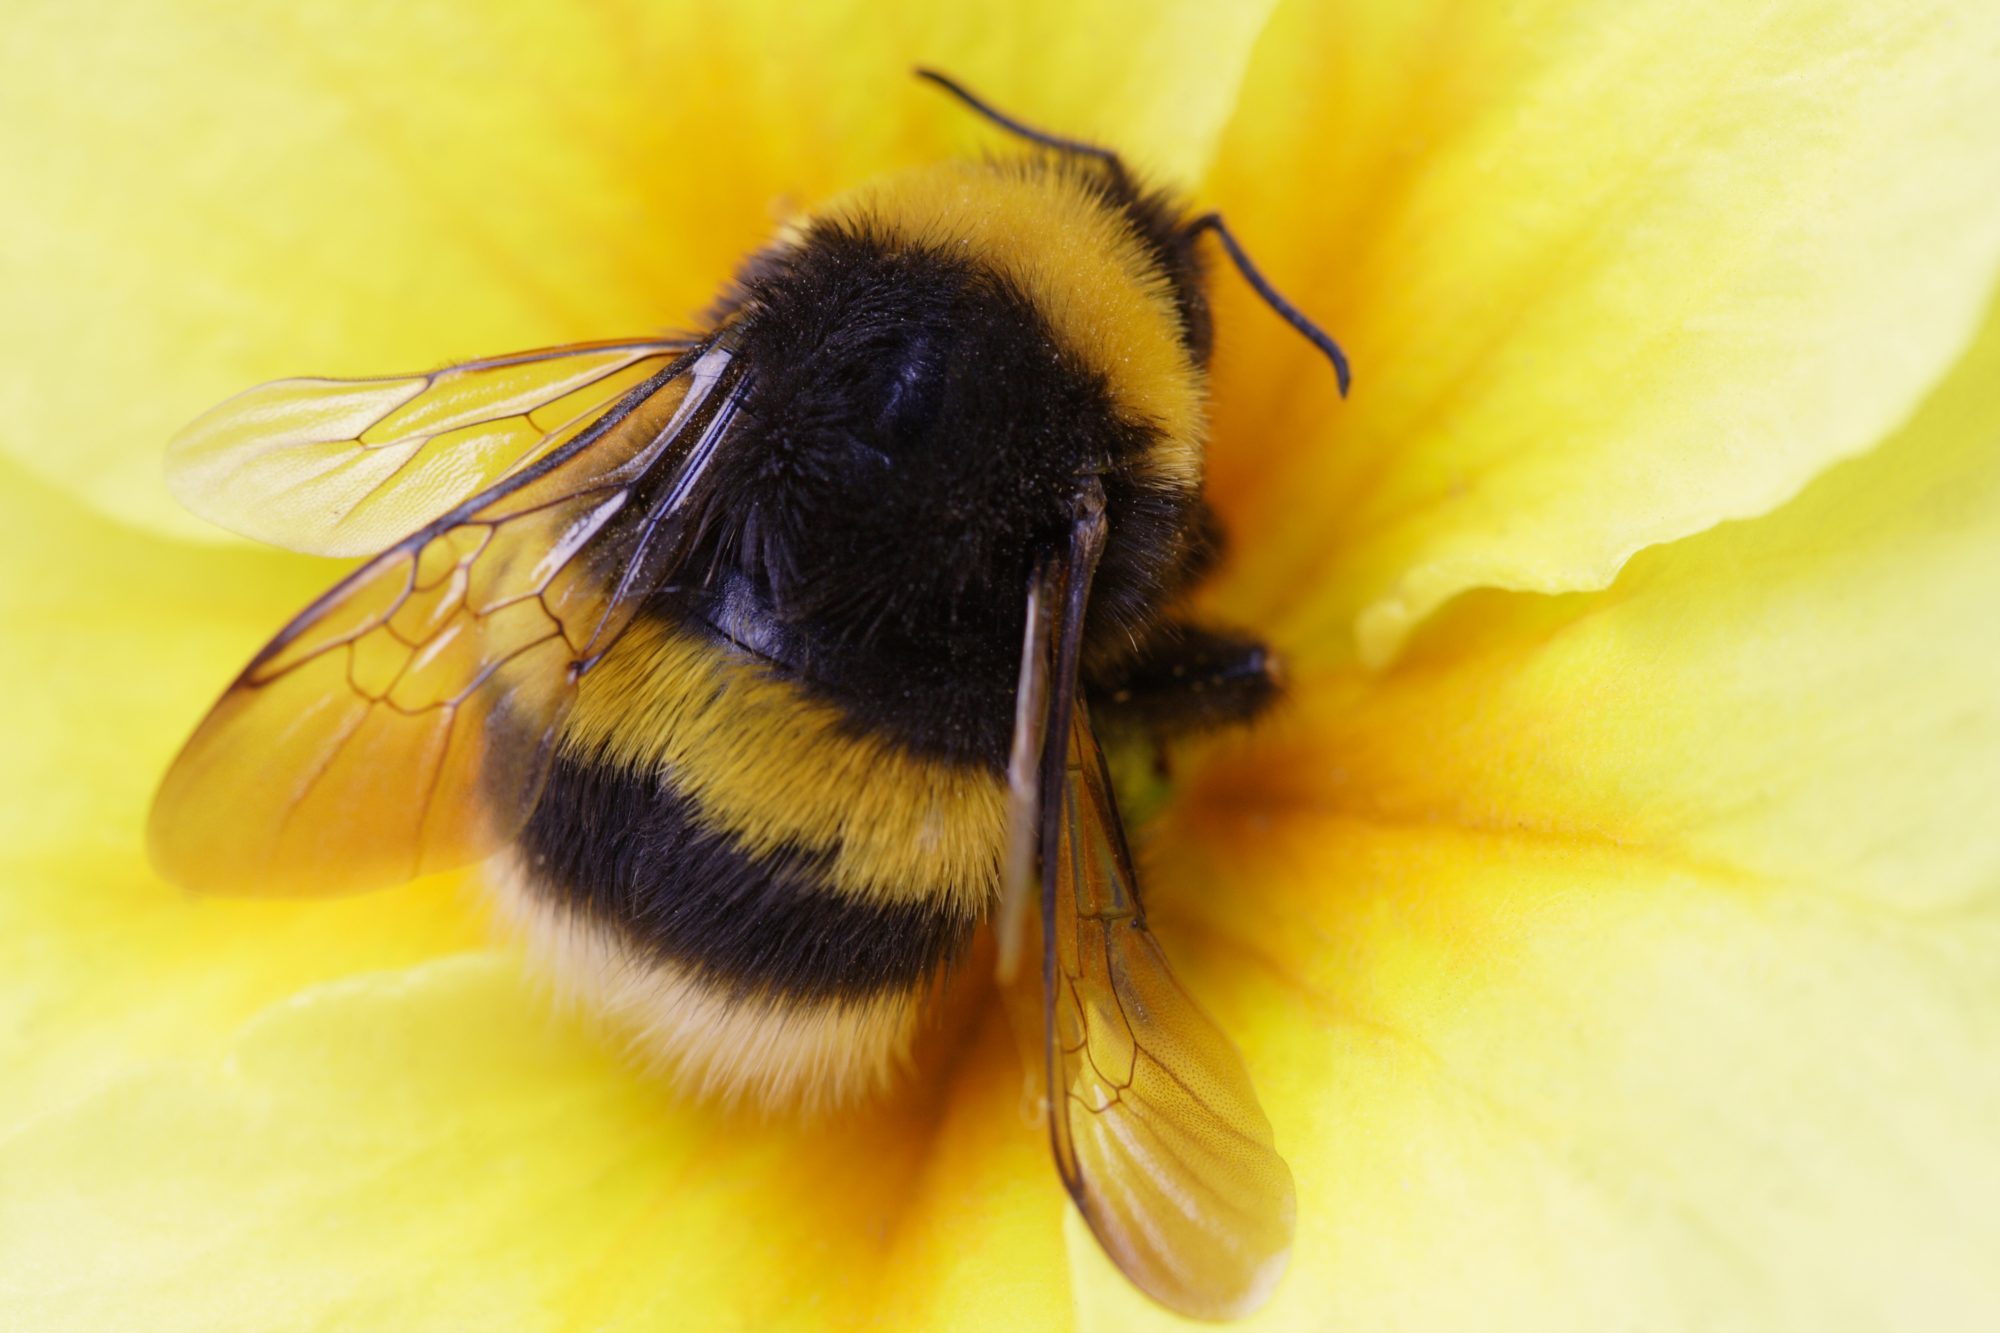 Researchers emphasise that bumble bees need biodiversity